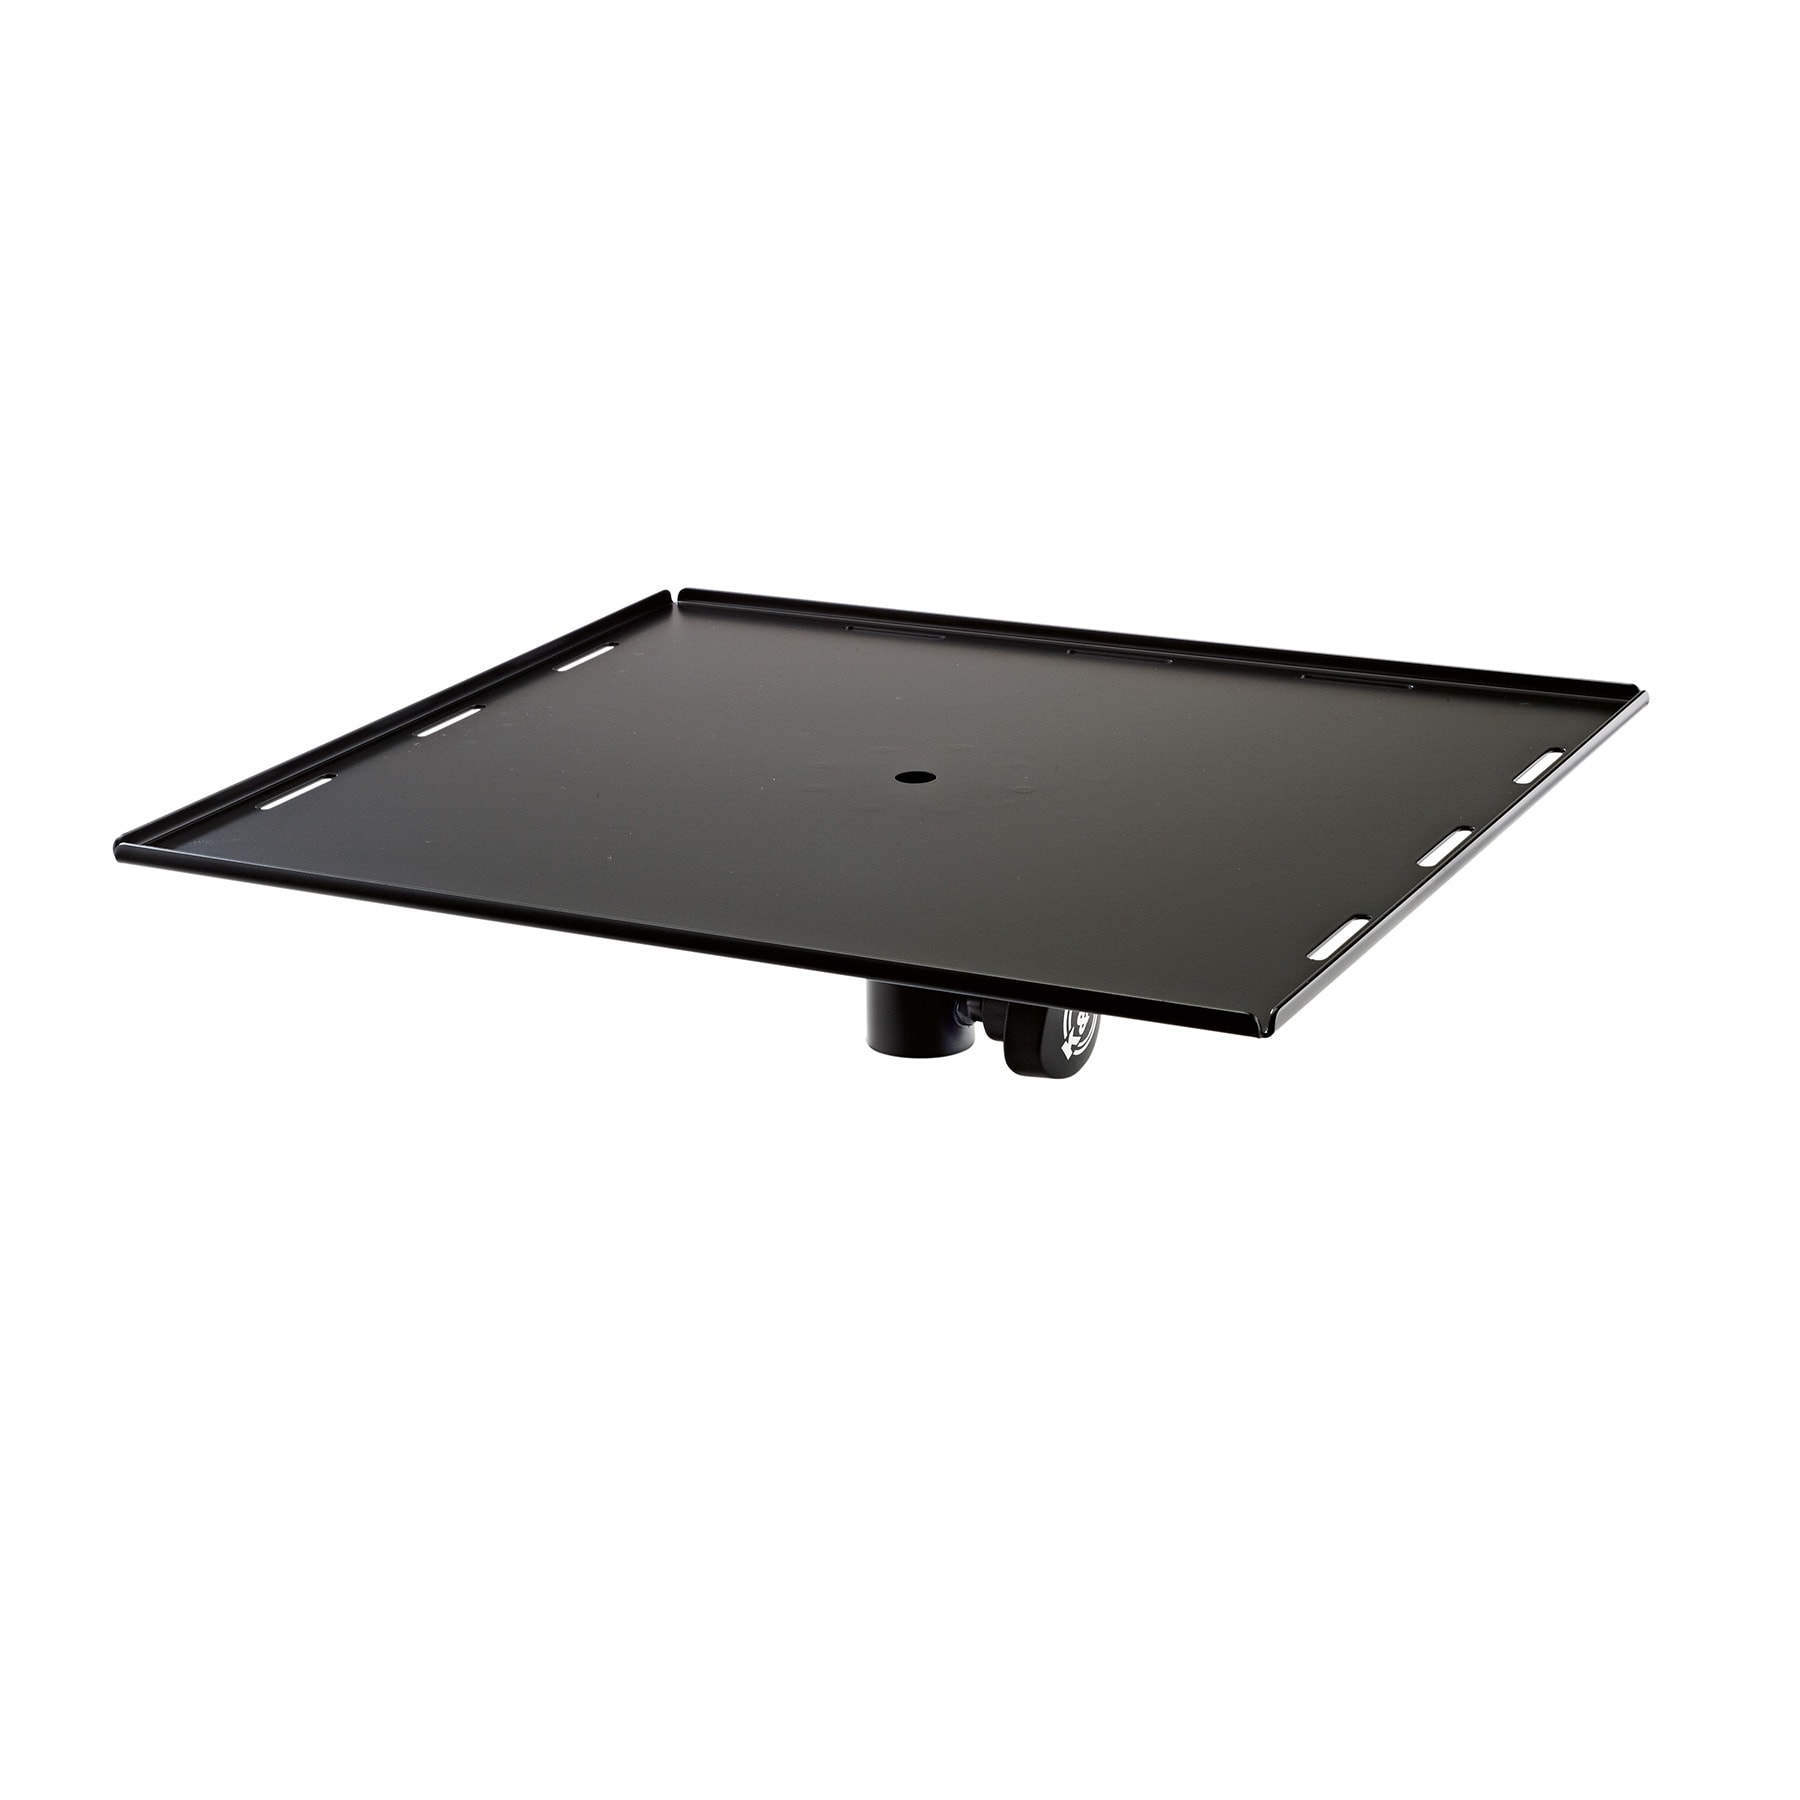 KM26747 - Beamer tray